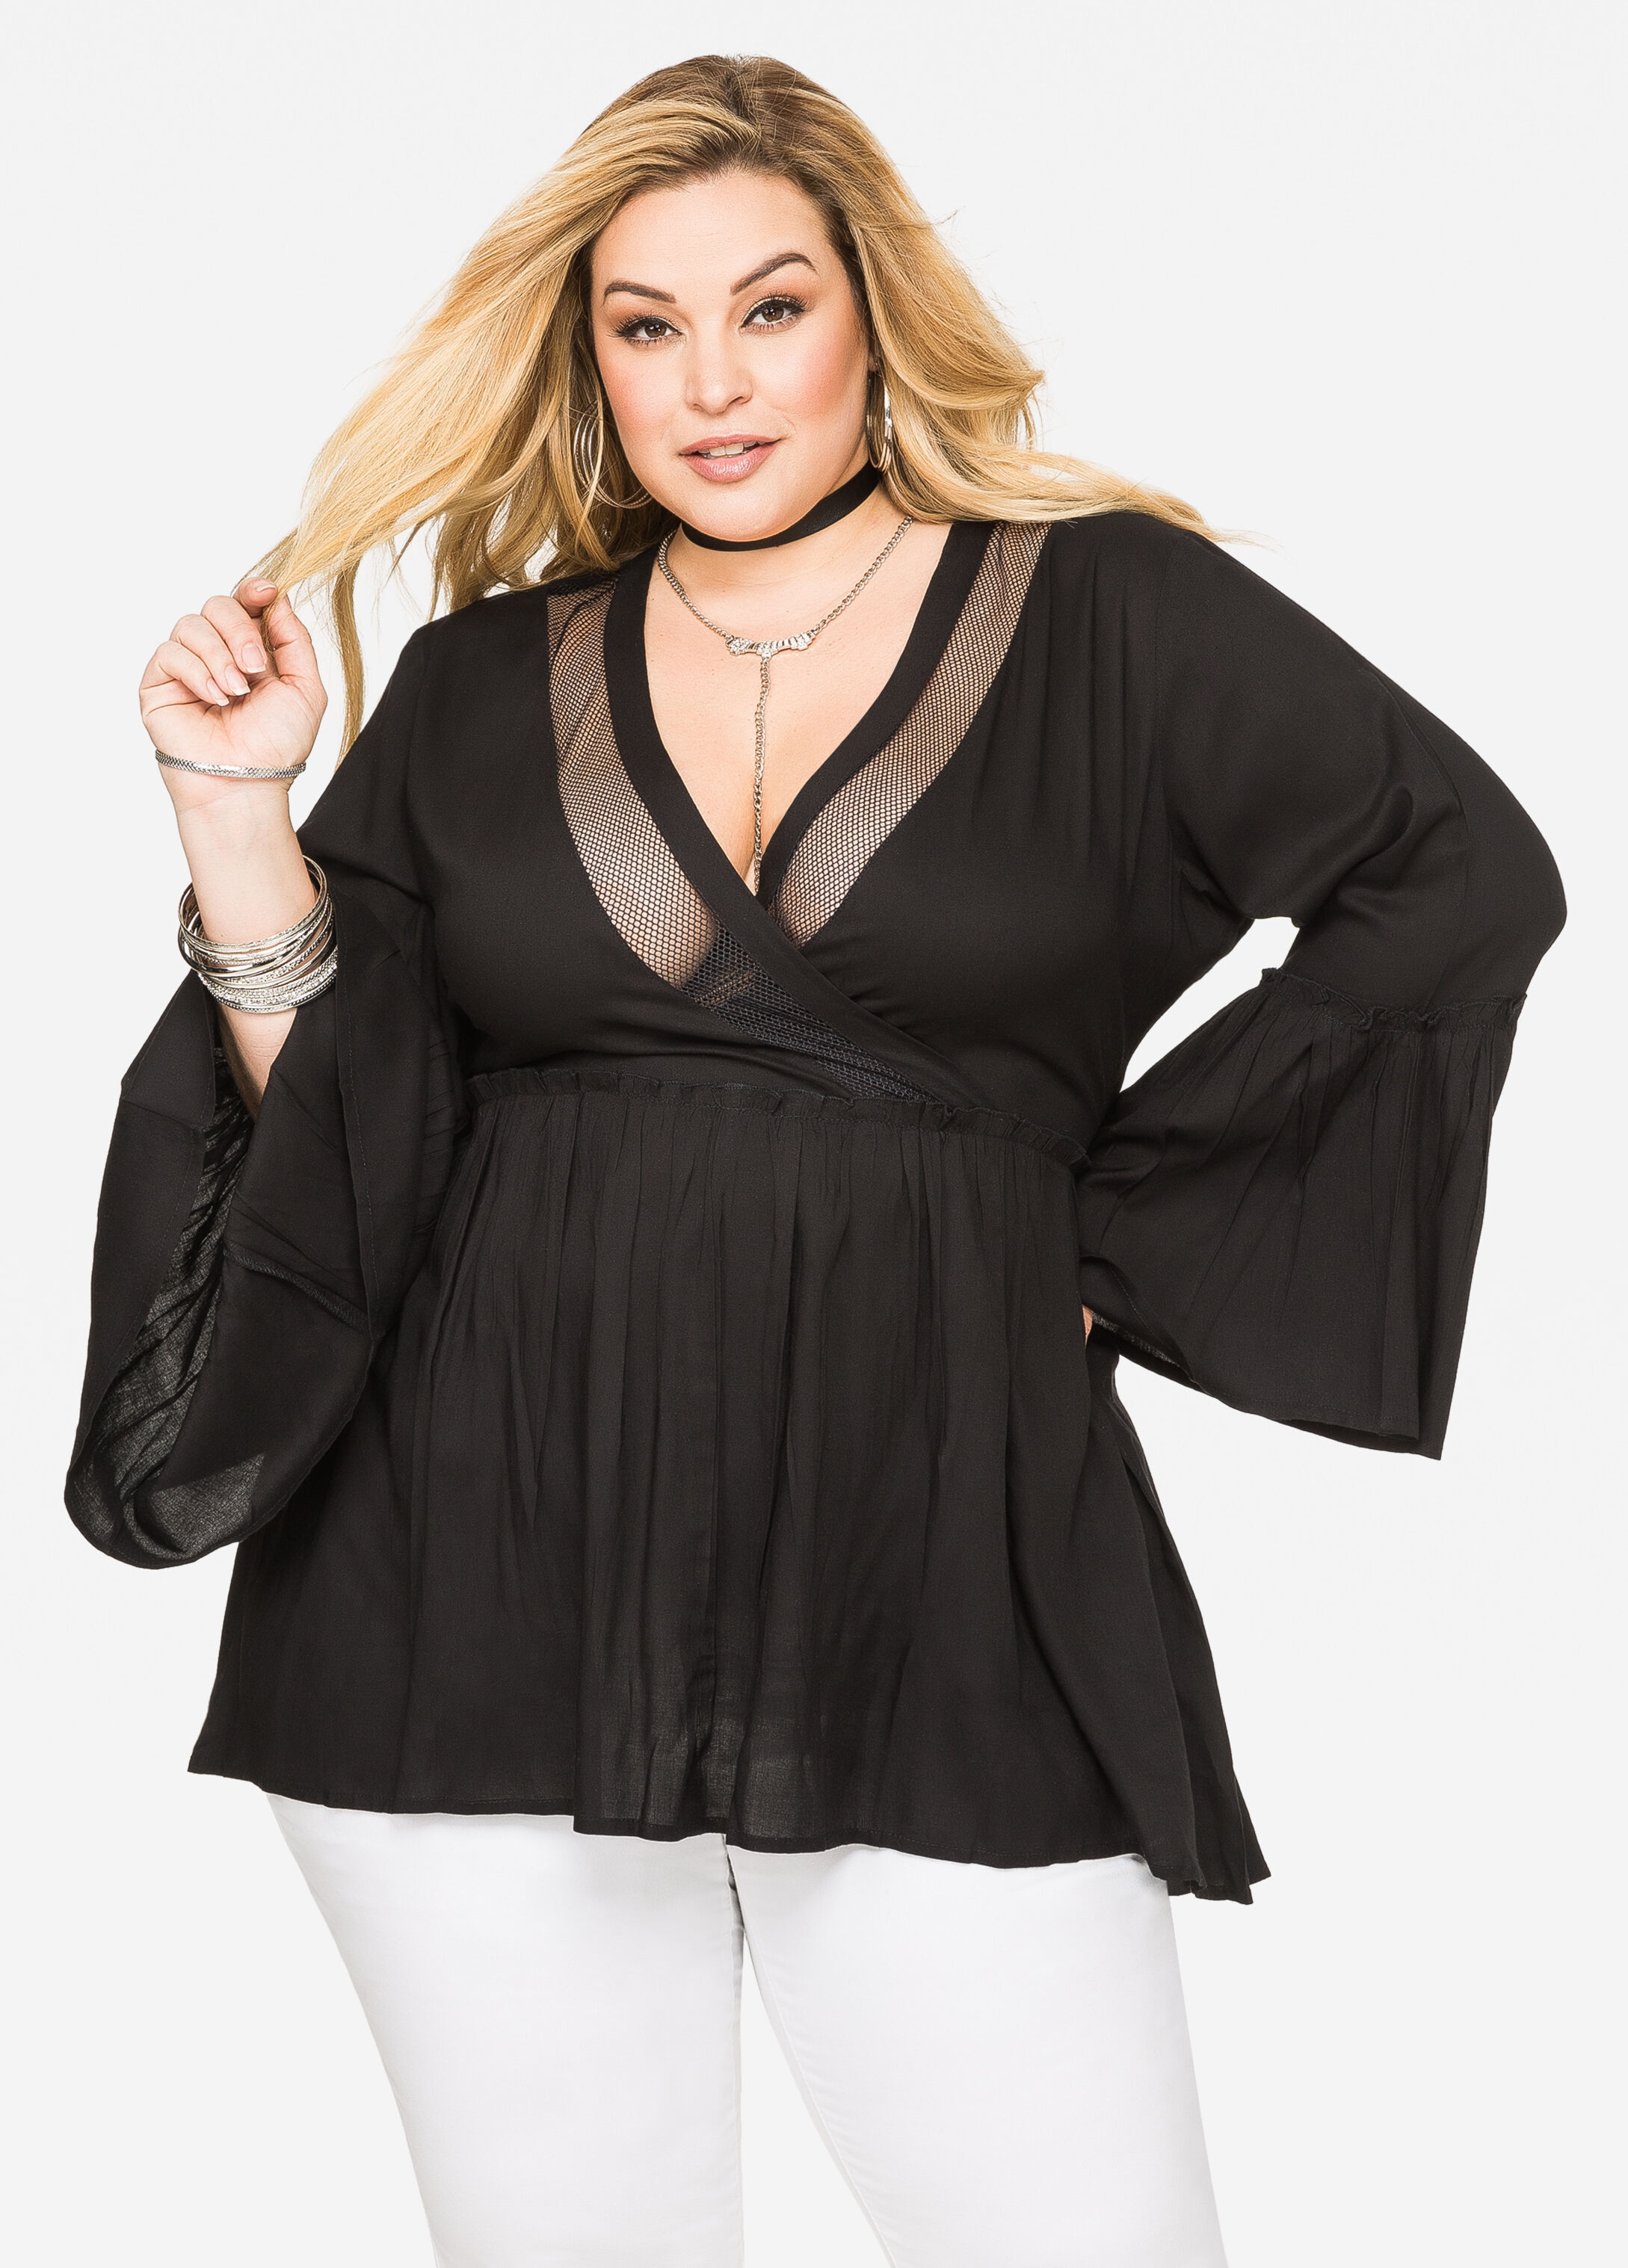 Buy Black Plus Size Tops - Ashley Stewart